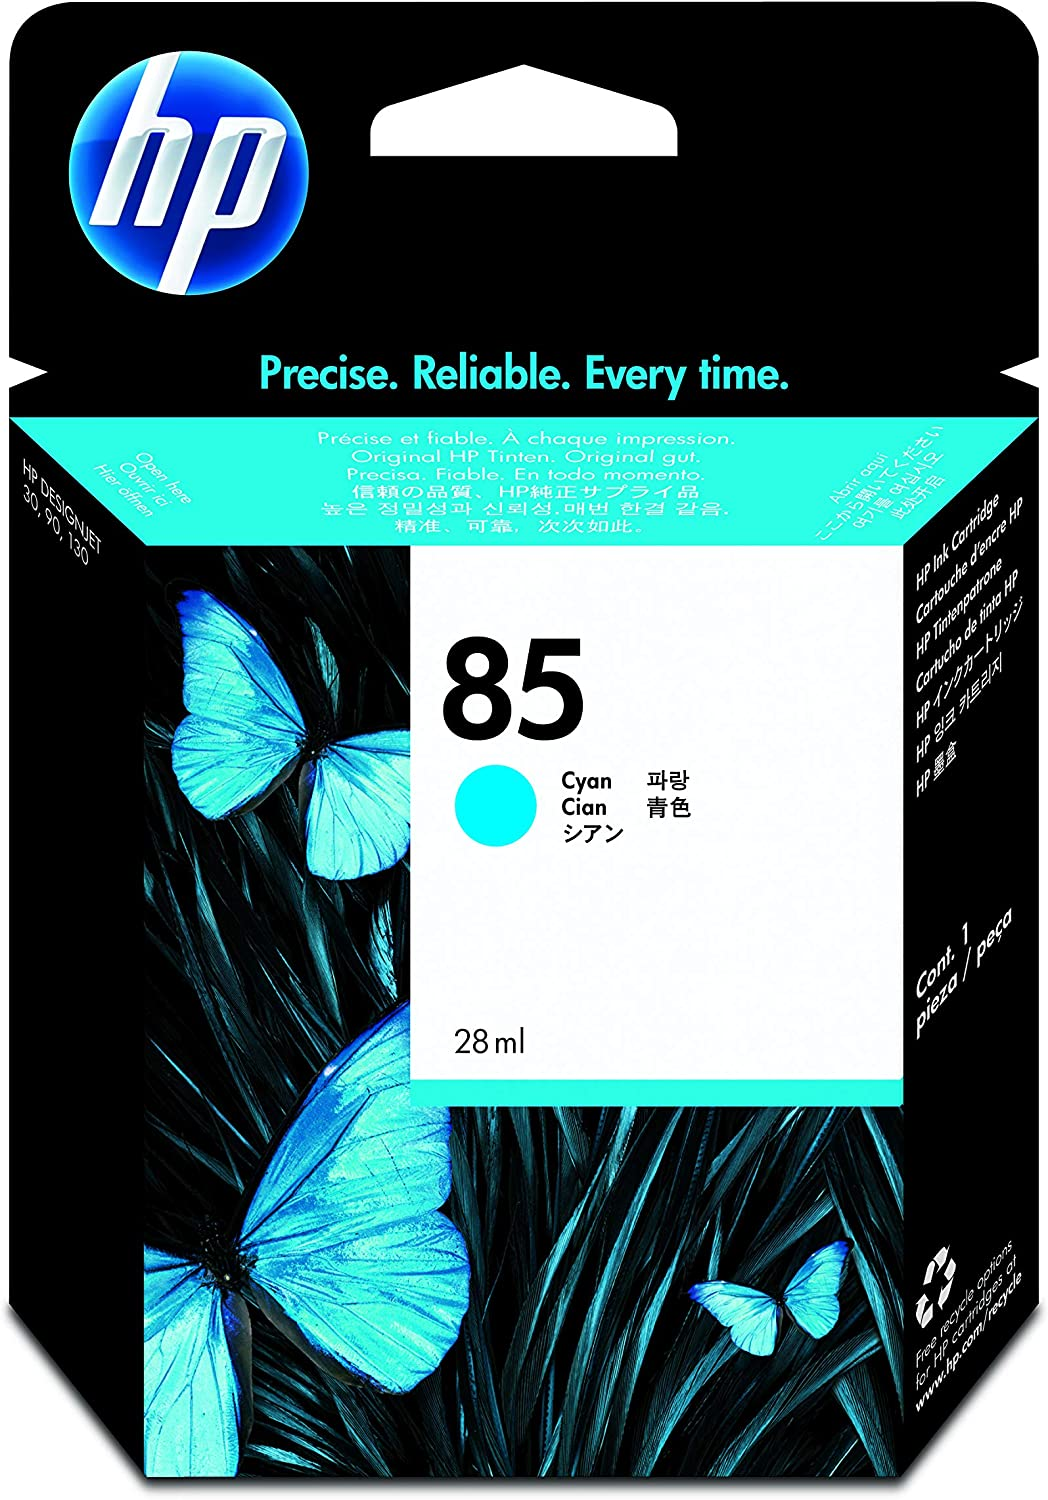 HP 85 Cyan Ink Cartridge (c9425a) for HP DesignJet 30, 130 Printers